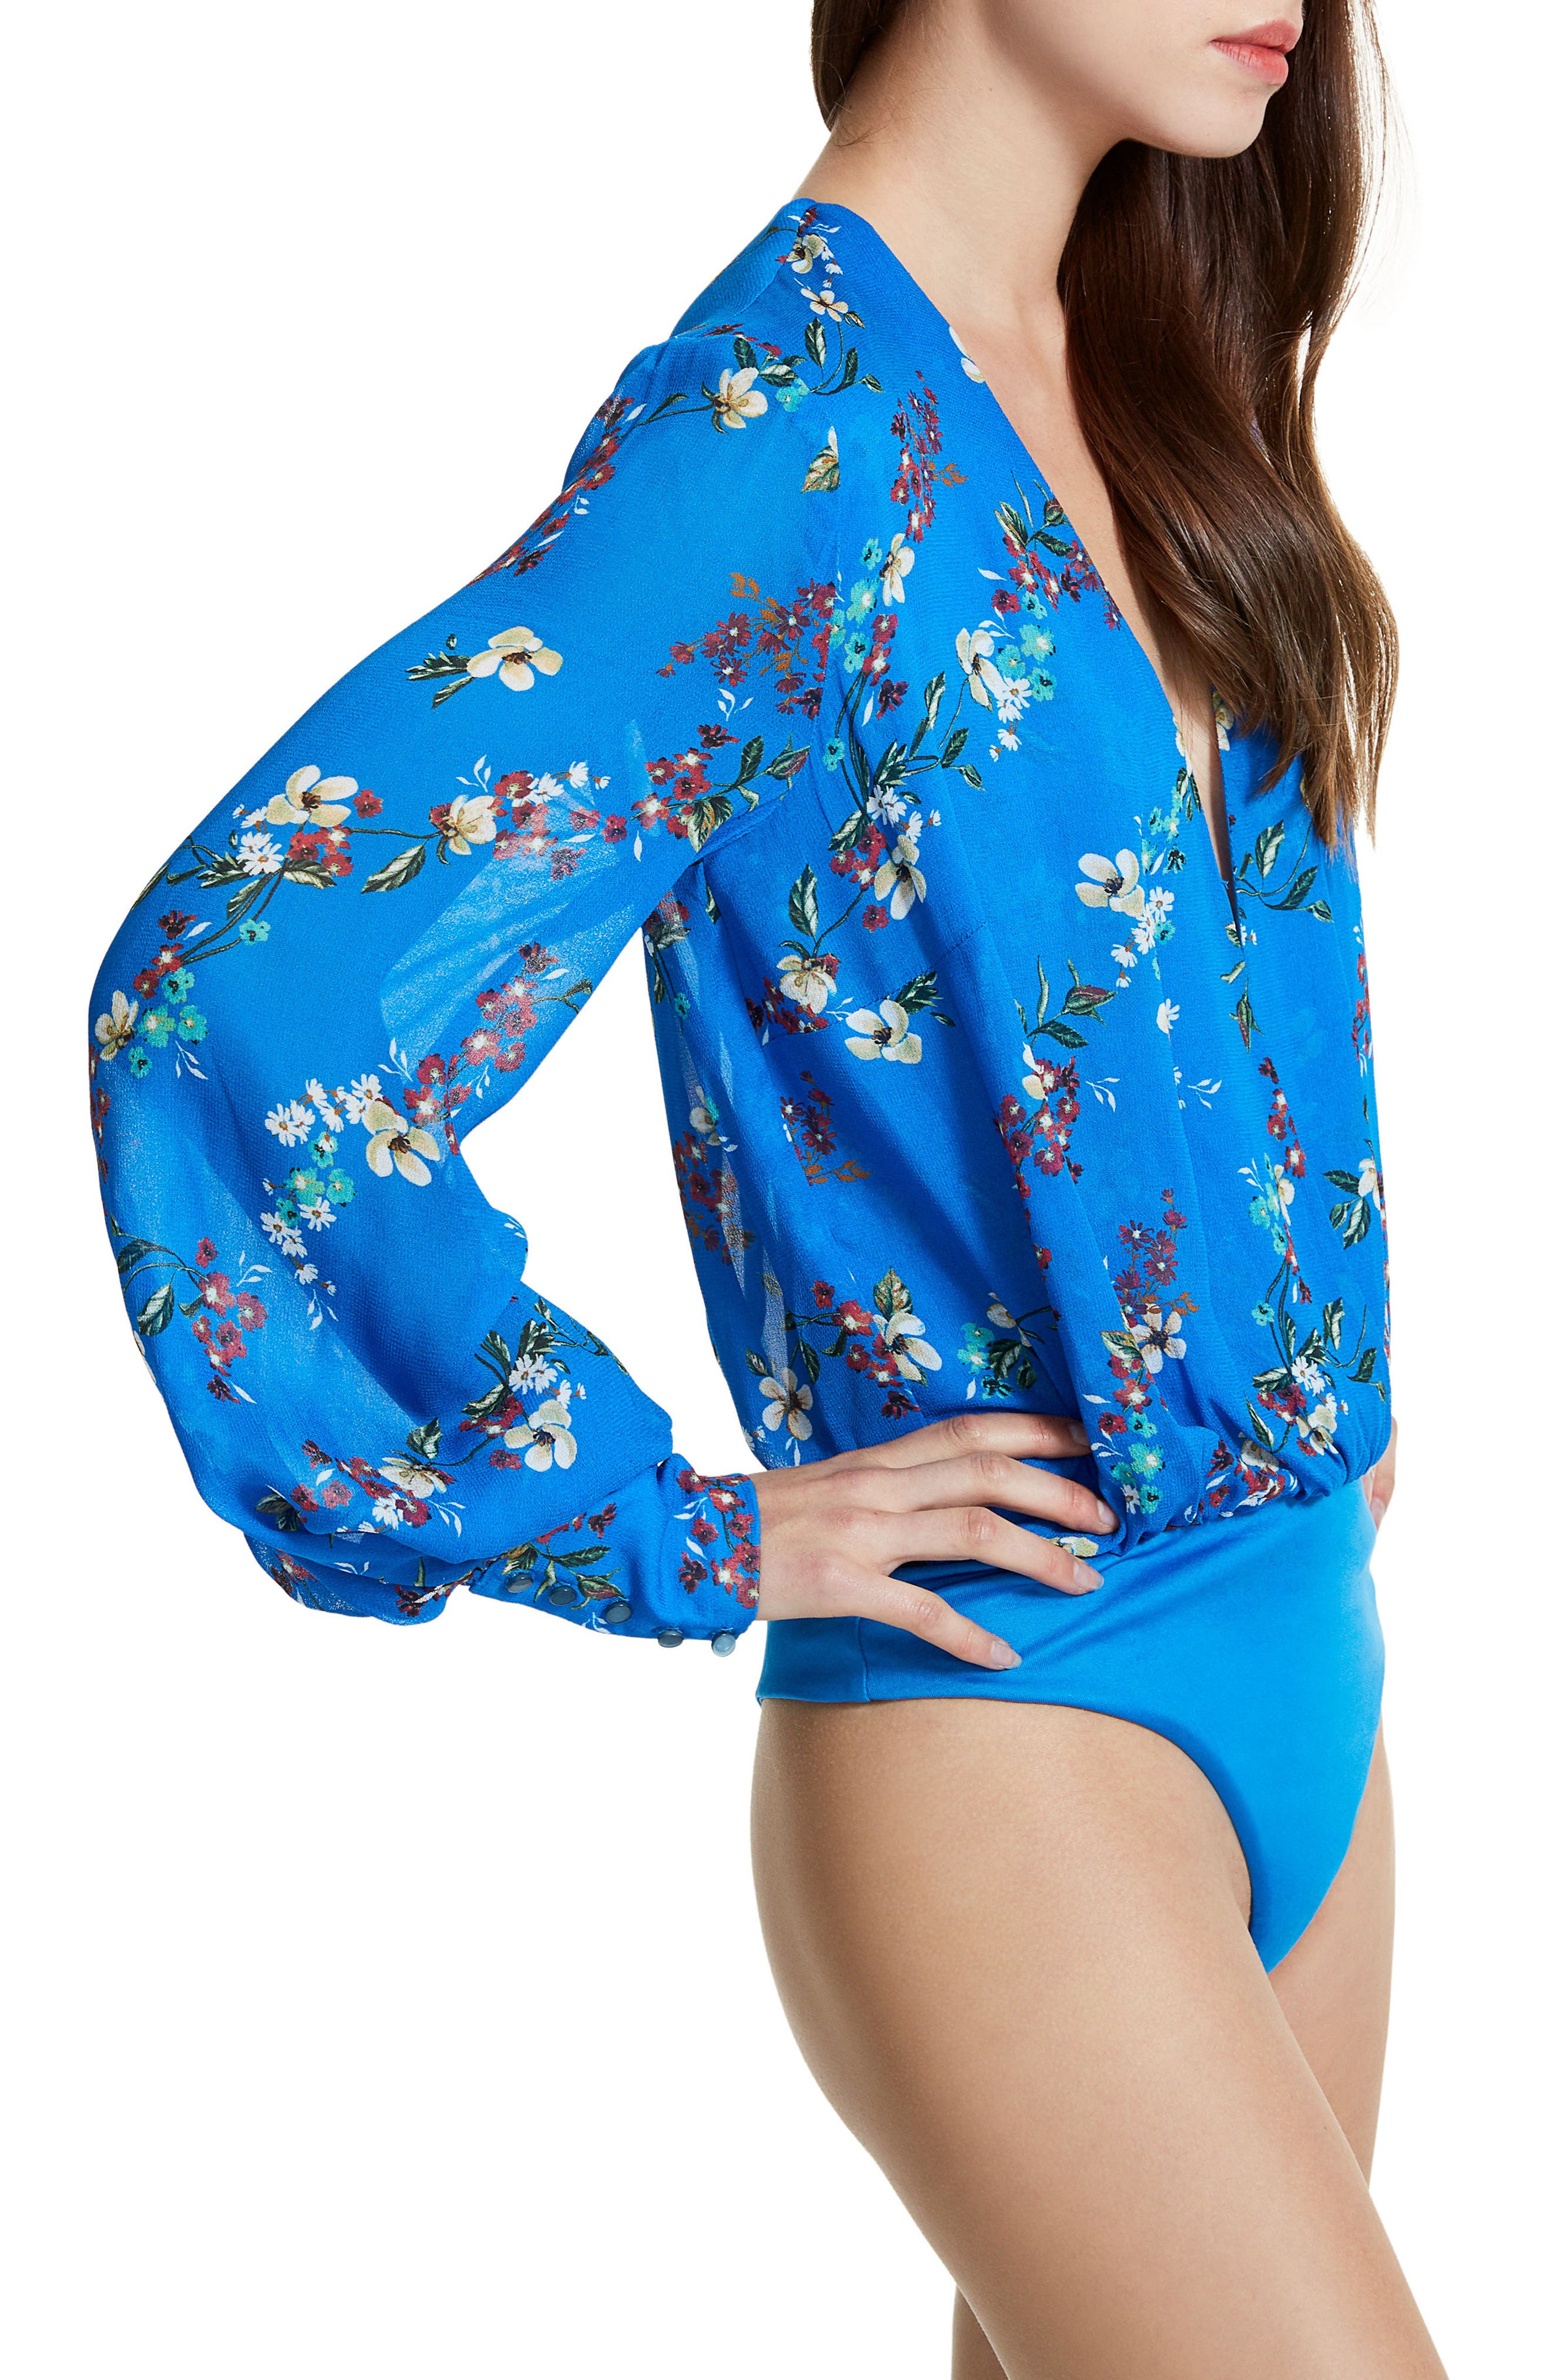 Sofie Thong Bodysuit & Scarf,                             Alternate thumbnail 5, color,                             Directoire Blue Daffodill